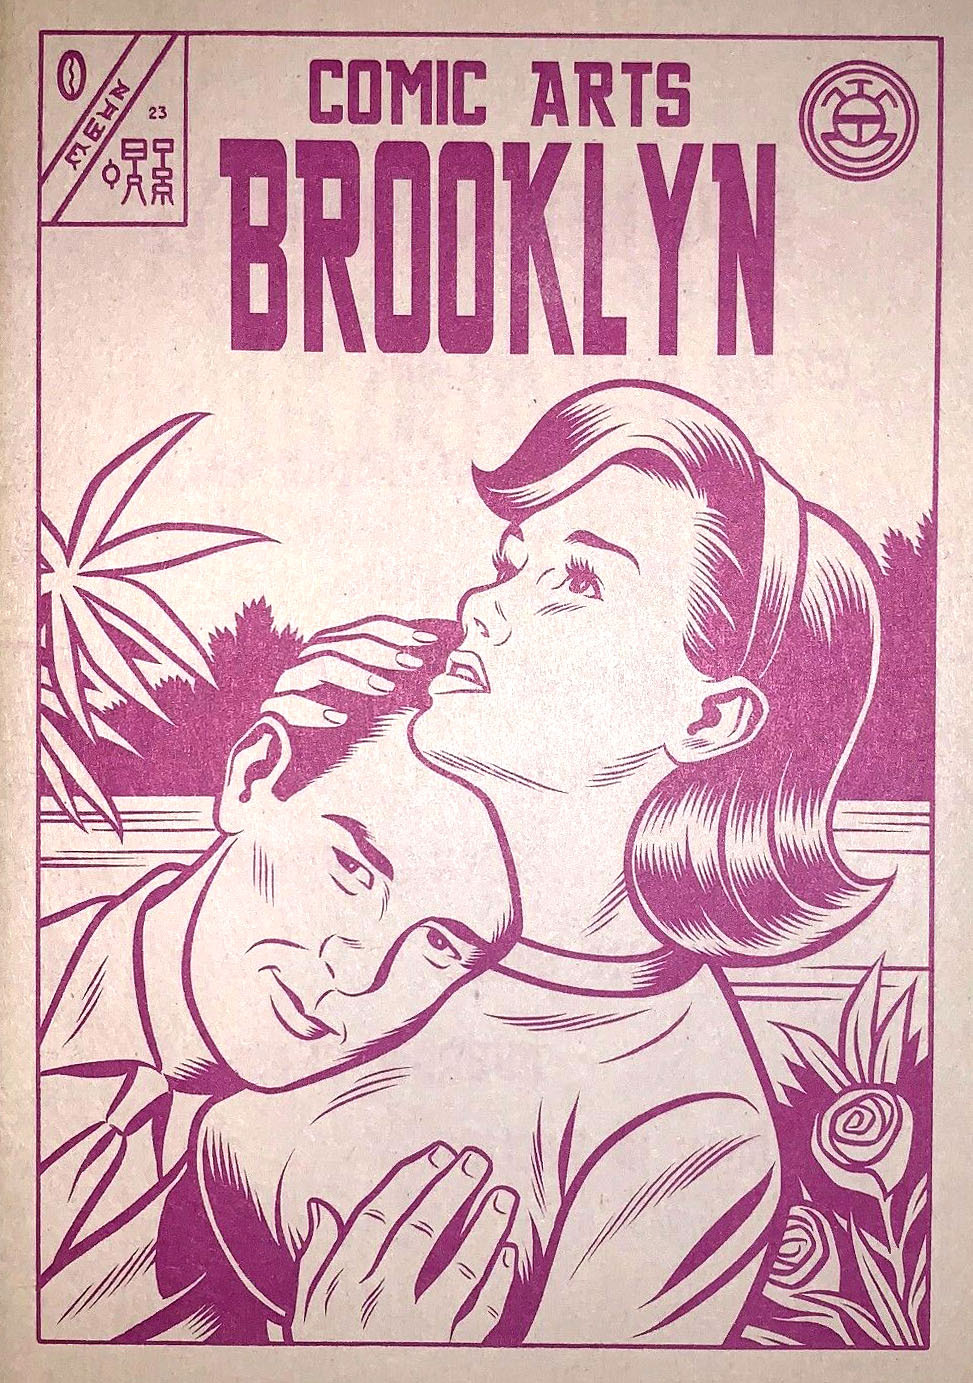 Comic Arts Brooklyn, por Charles Burns